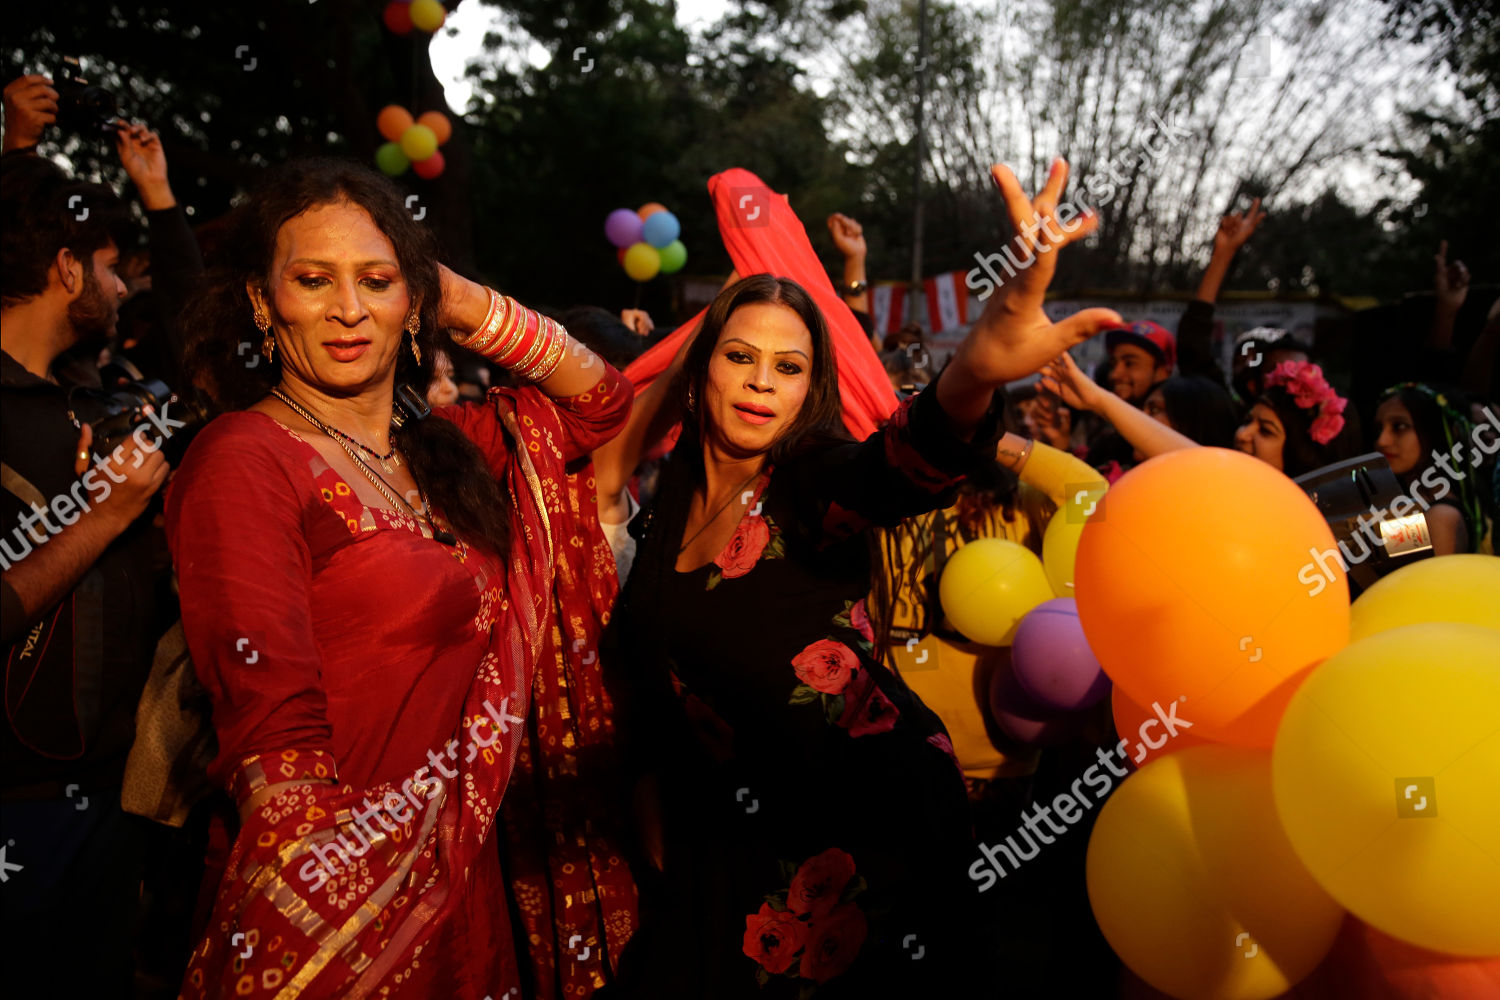 India Gay Pride Parade, New Delhi, India - 27 Nov 2016